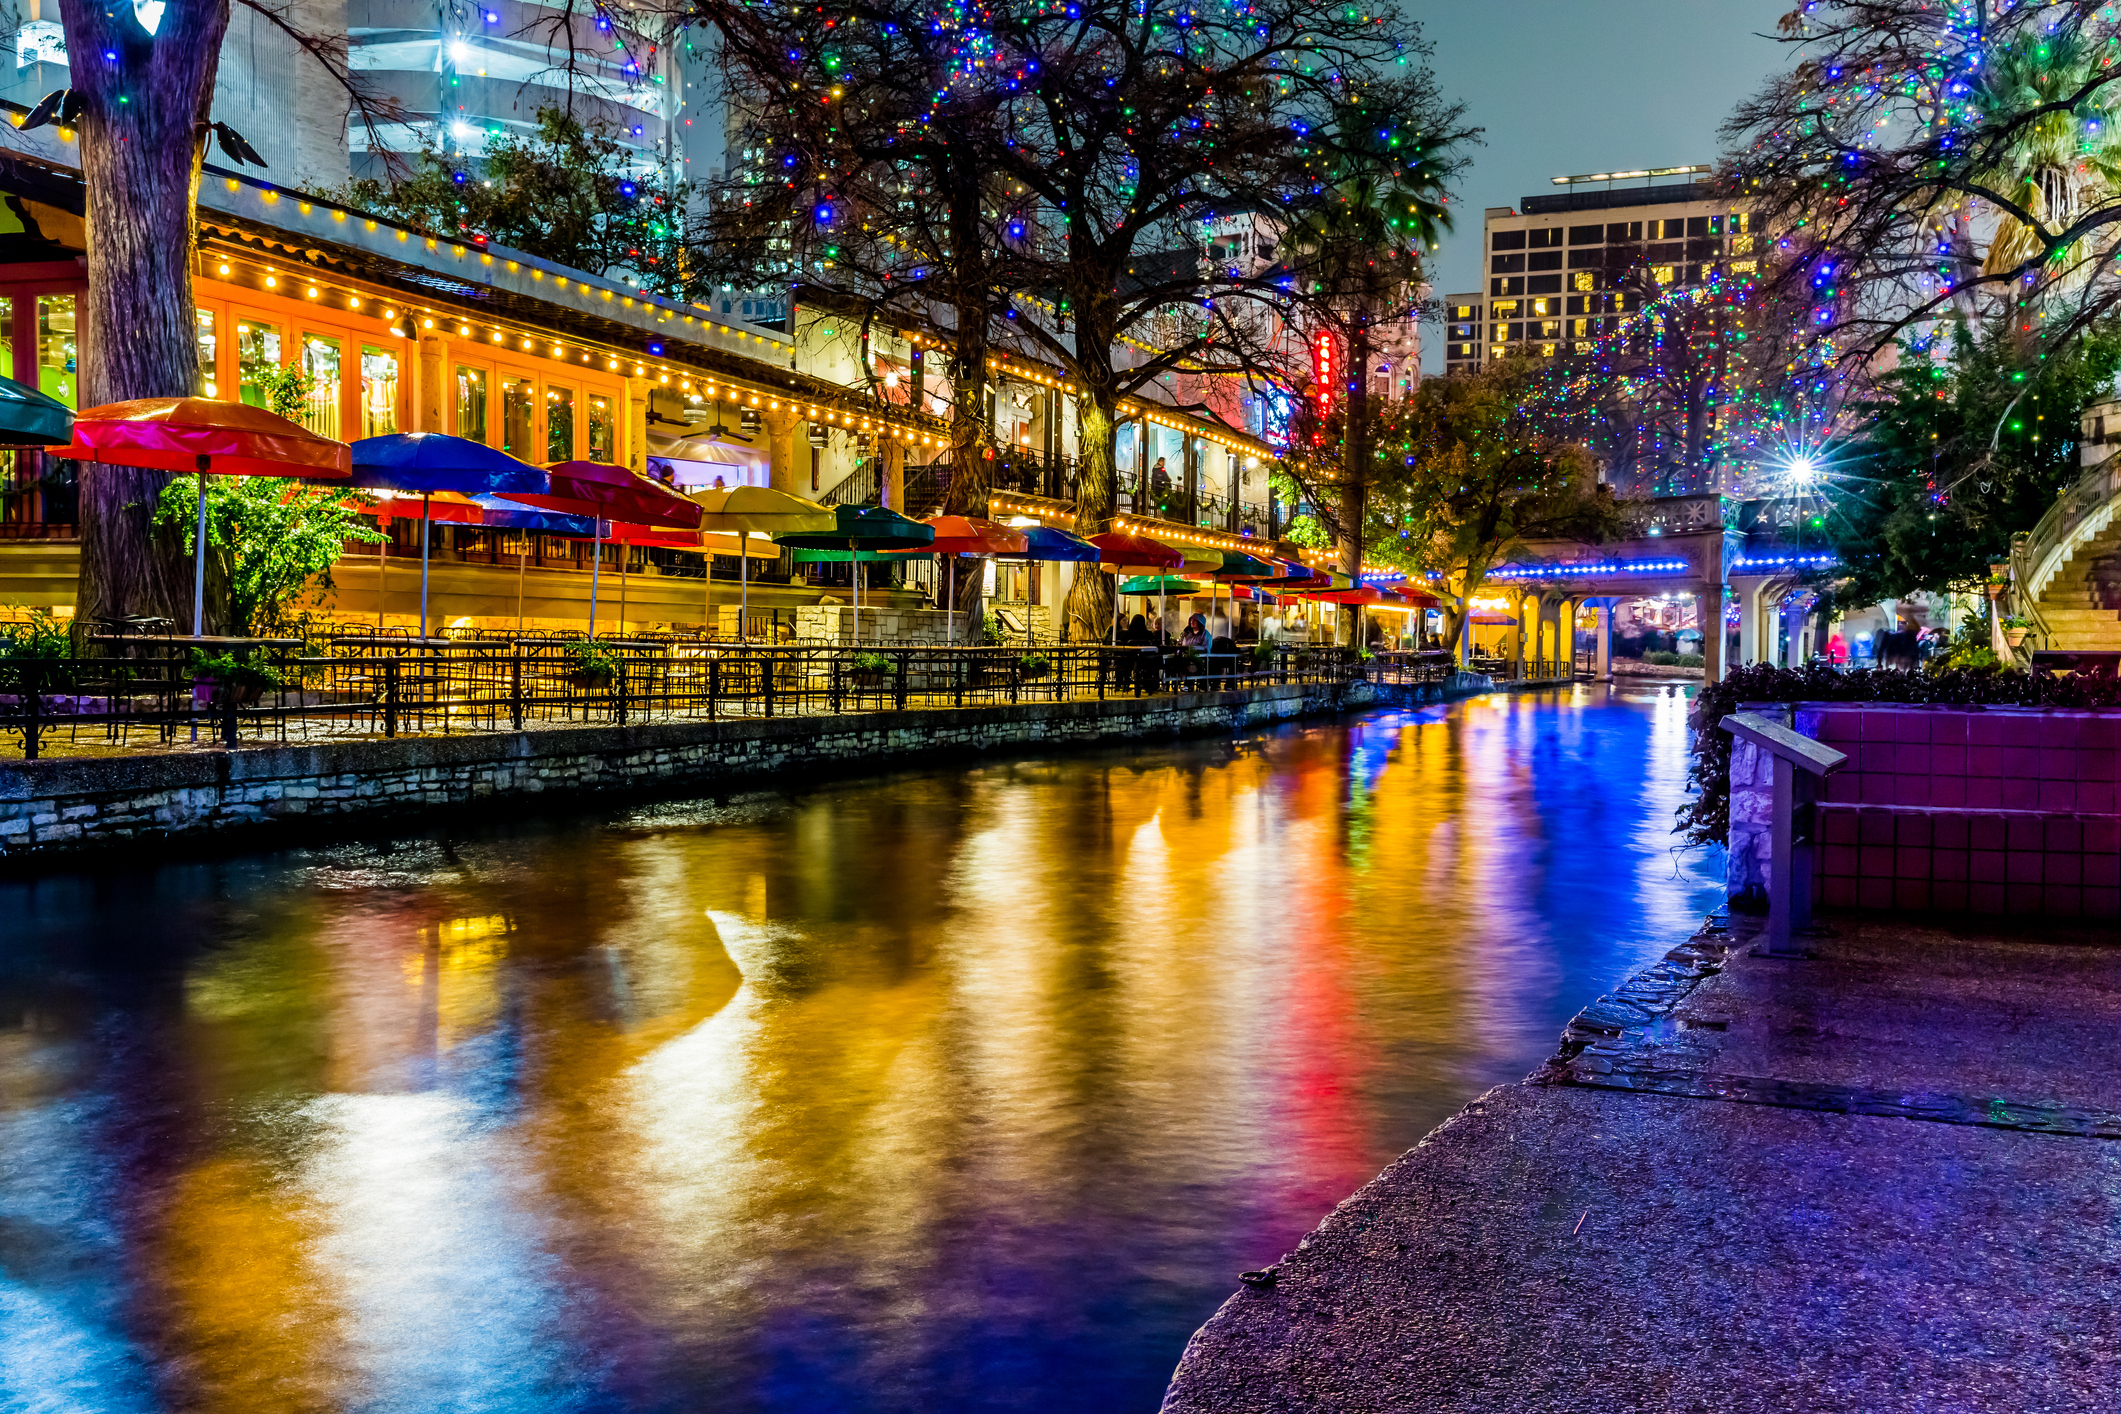 River lined with colorful umbrellas and Christmas lights in the evening.